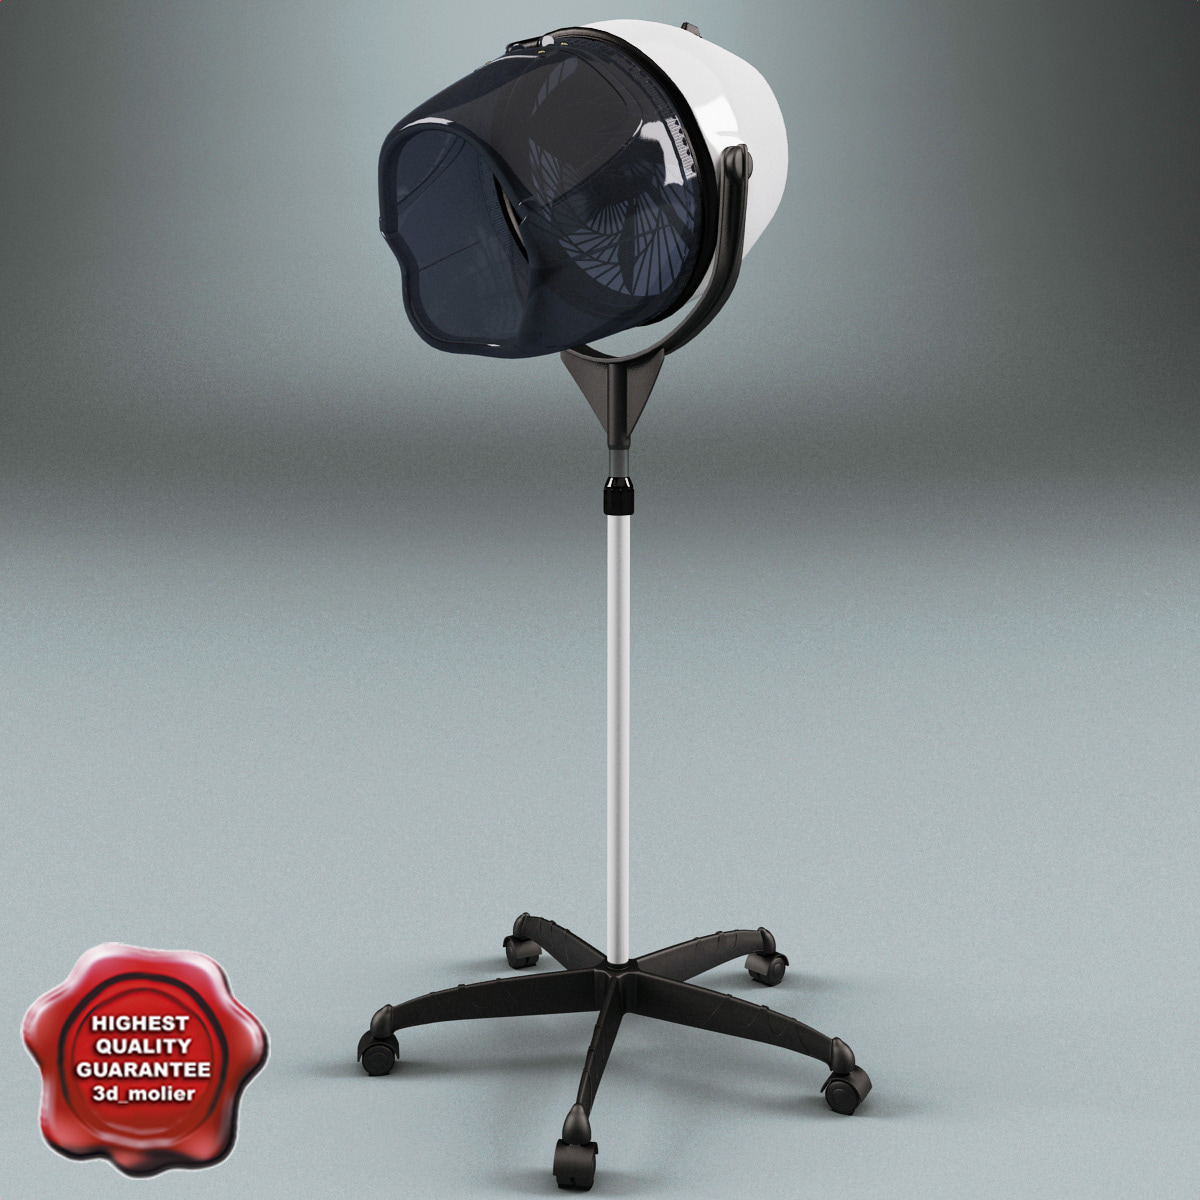 Salon stand hair dryer 3d model for Salon stand